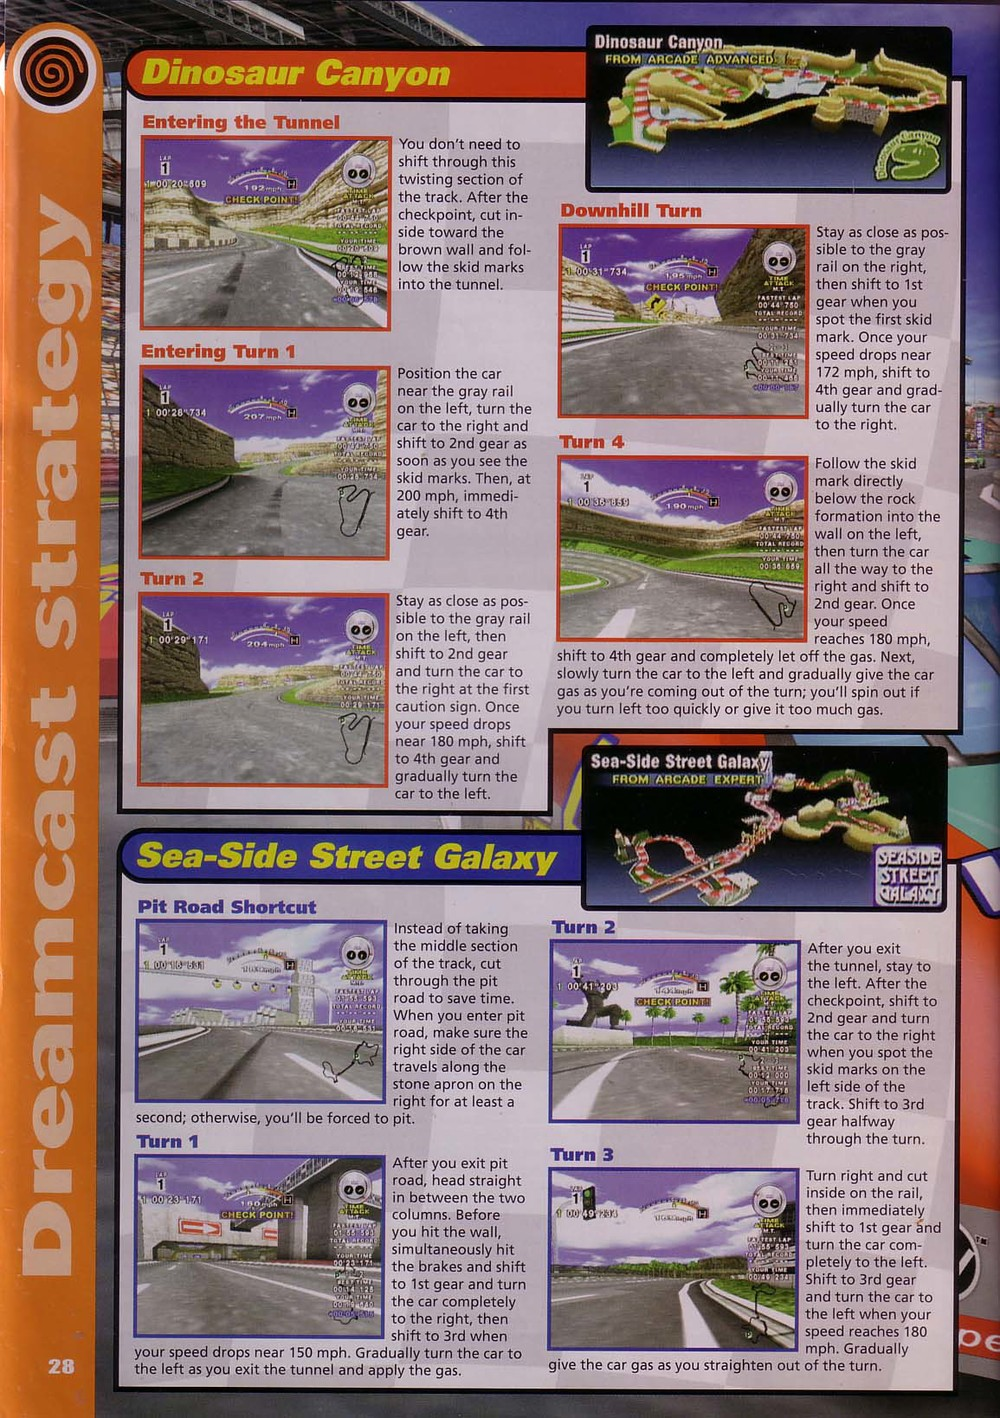 TipsandTricks_May_2001_Daytona_USA_pg3_Strategy.jpg